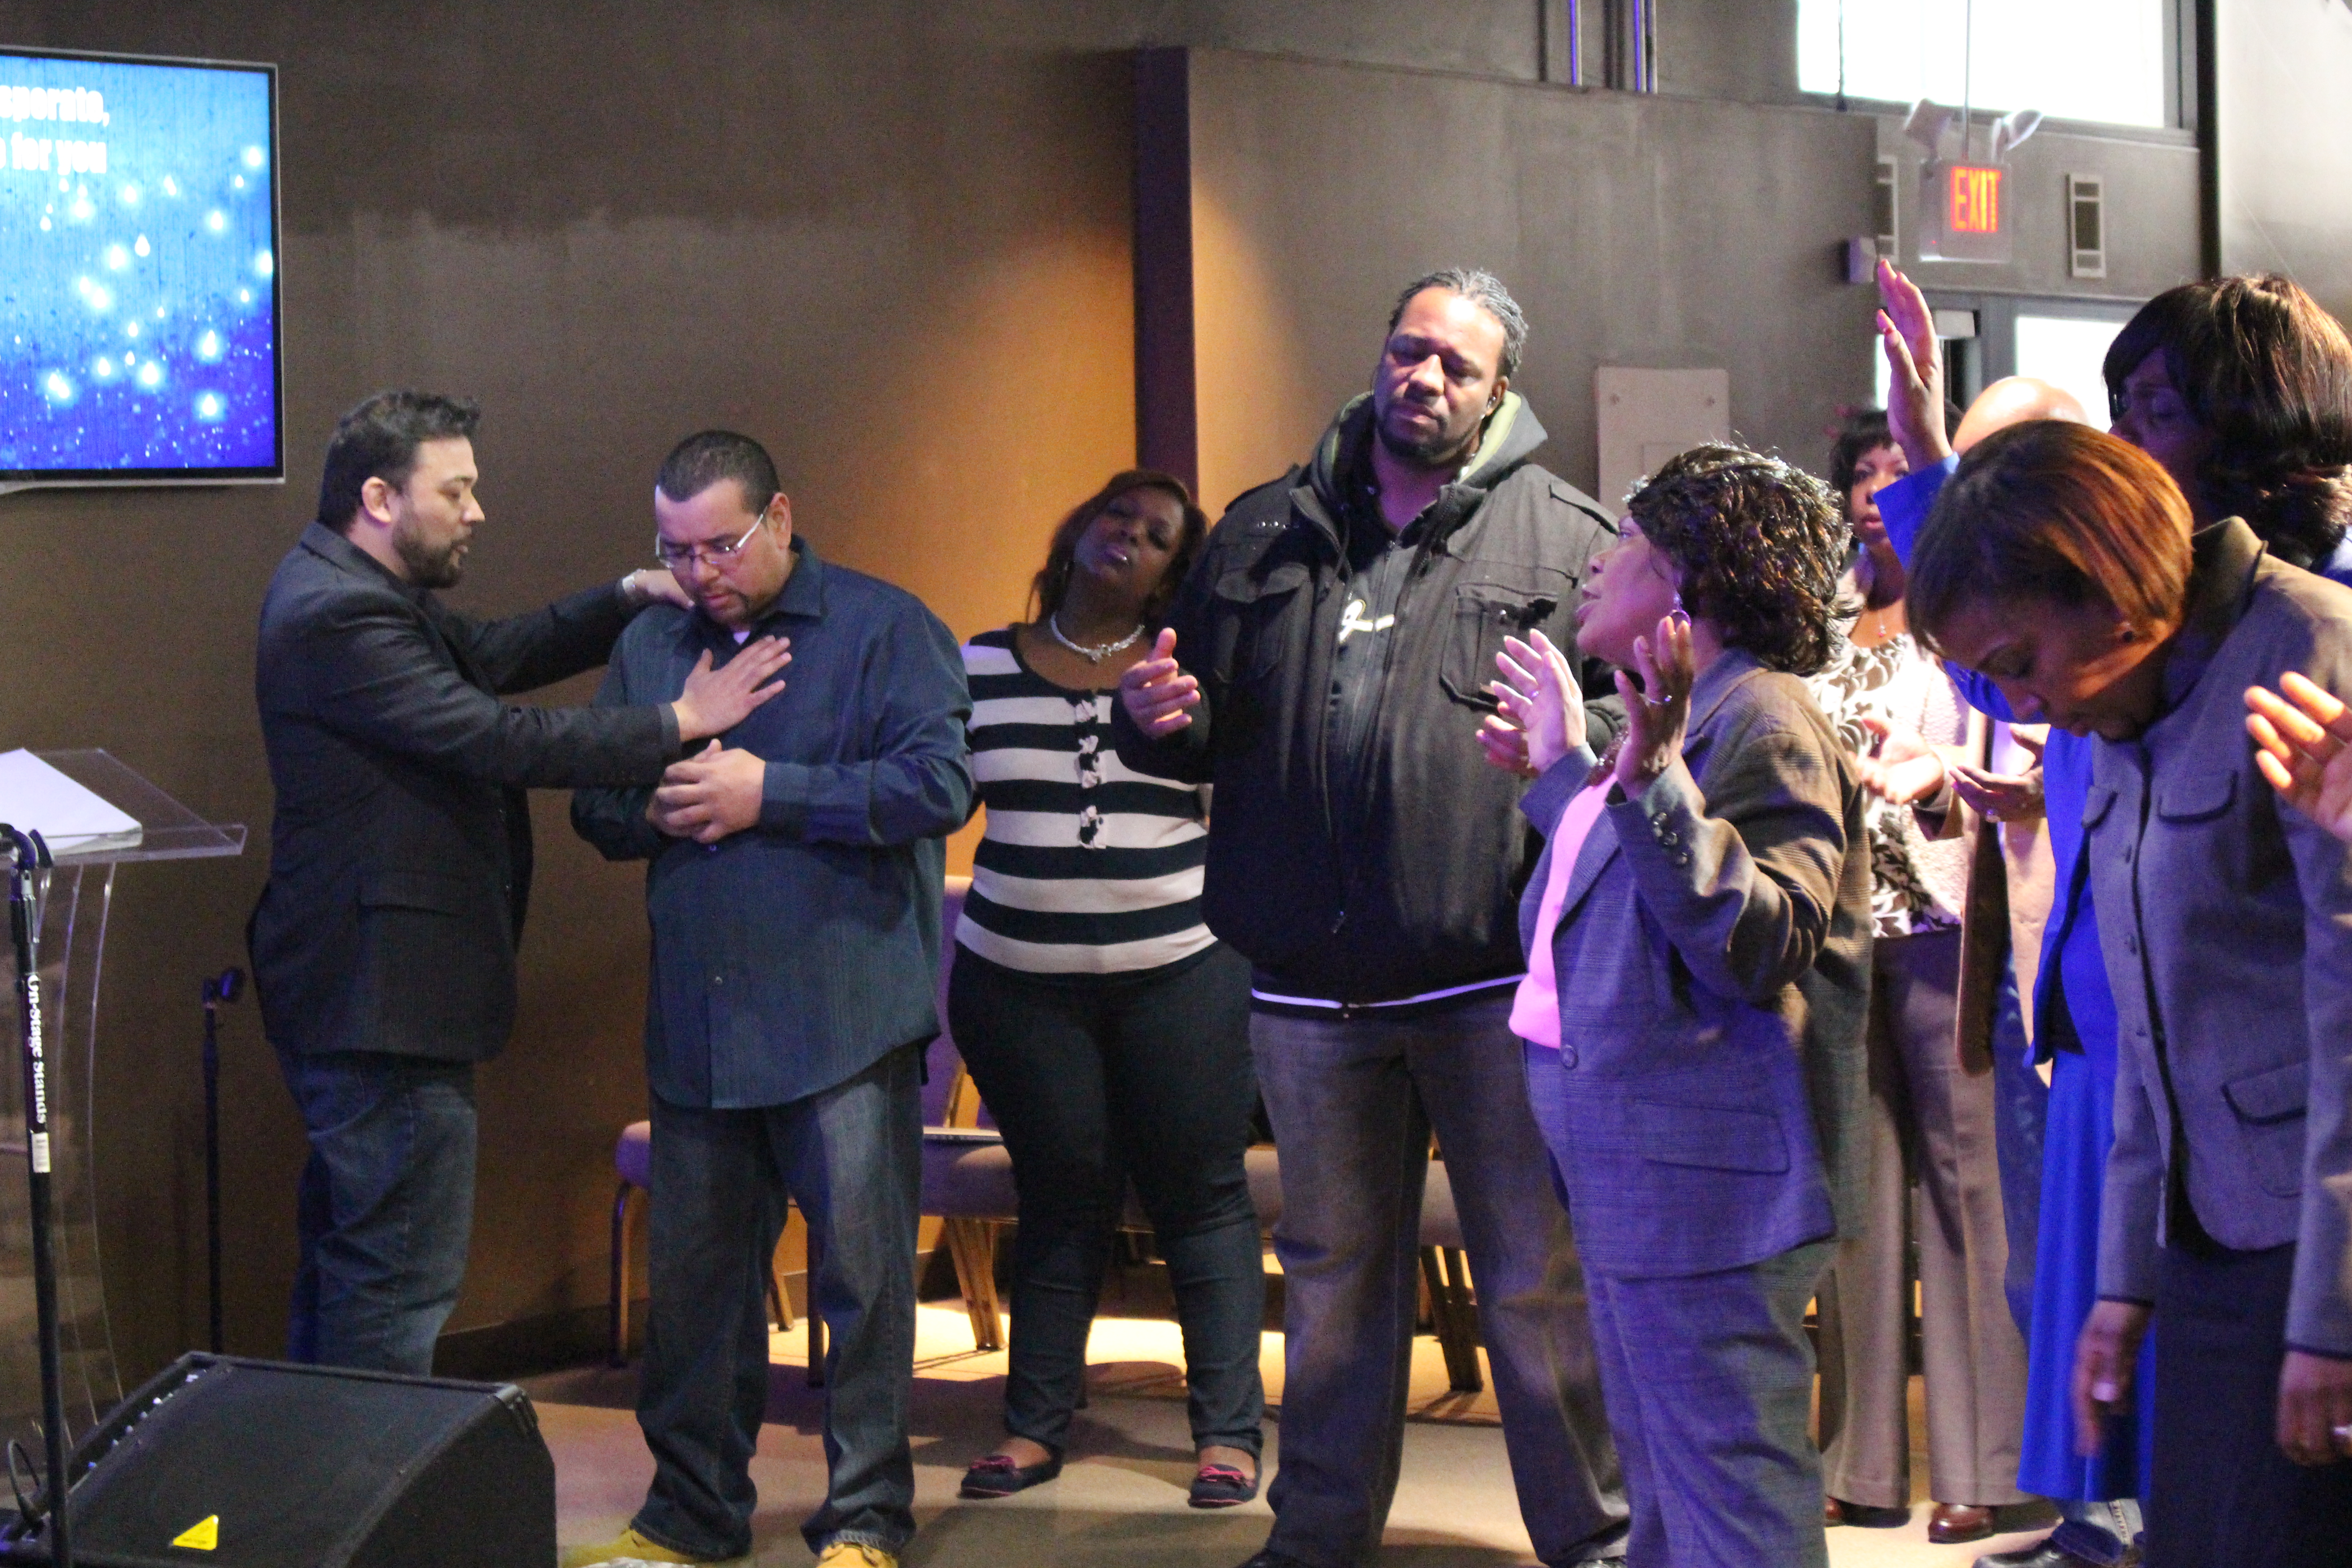 Our Blue Island campus saw the Holy Spirit at work in both services, with reports of physical healings & at least 1 person filled with the Holy Spirit!